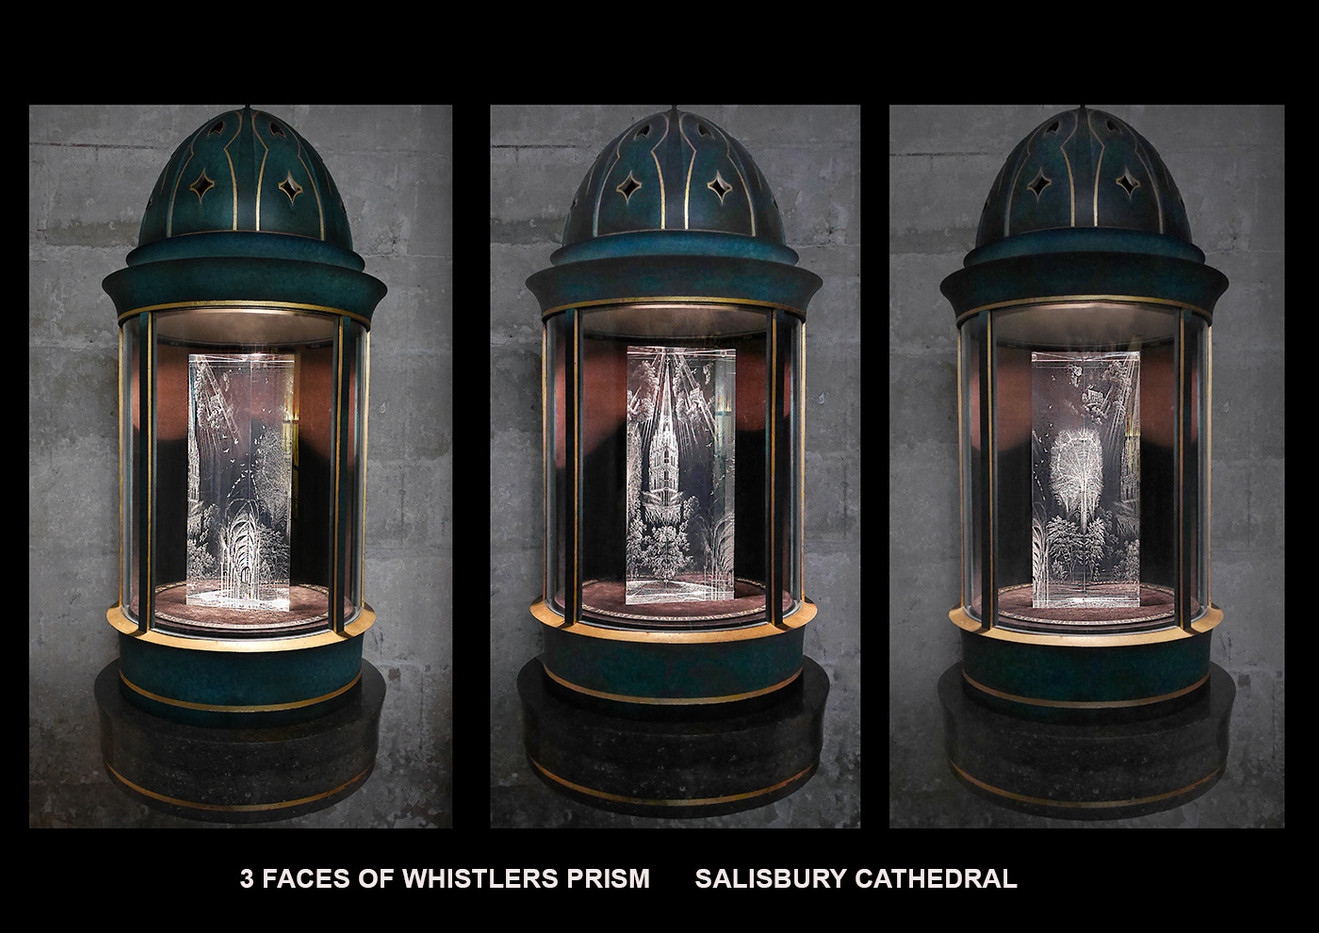 20 3 FACES OF WHISTLER'S PRISM by Denys Clarke